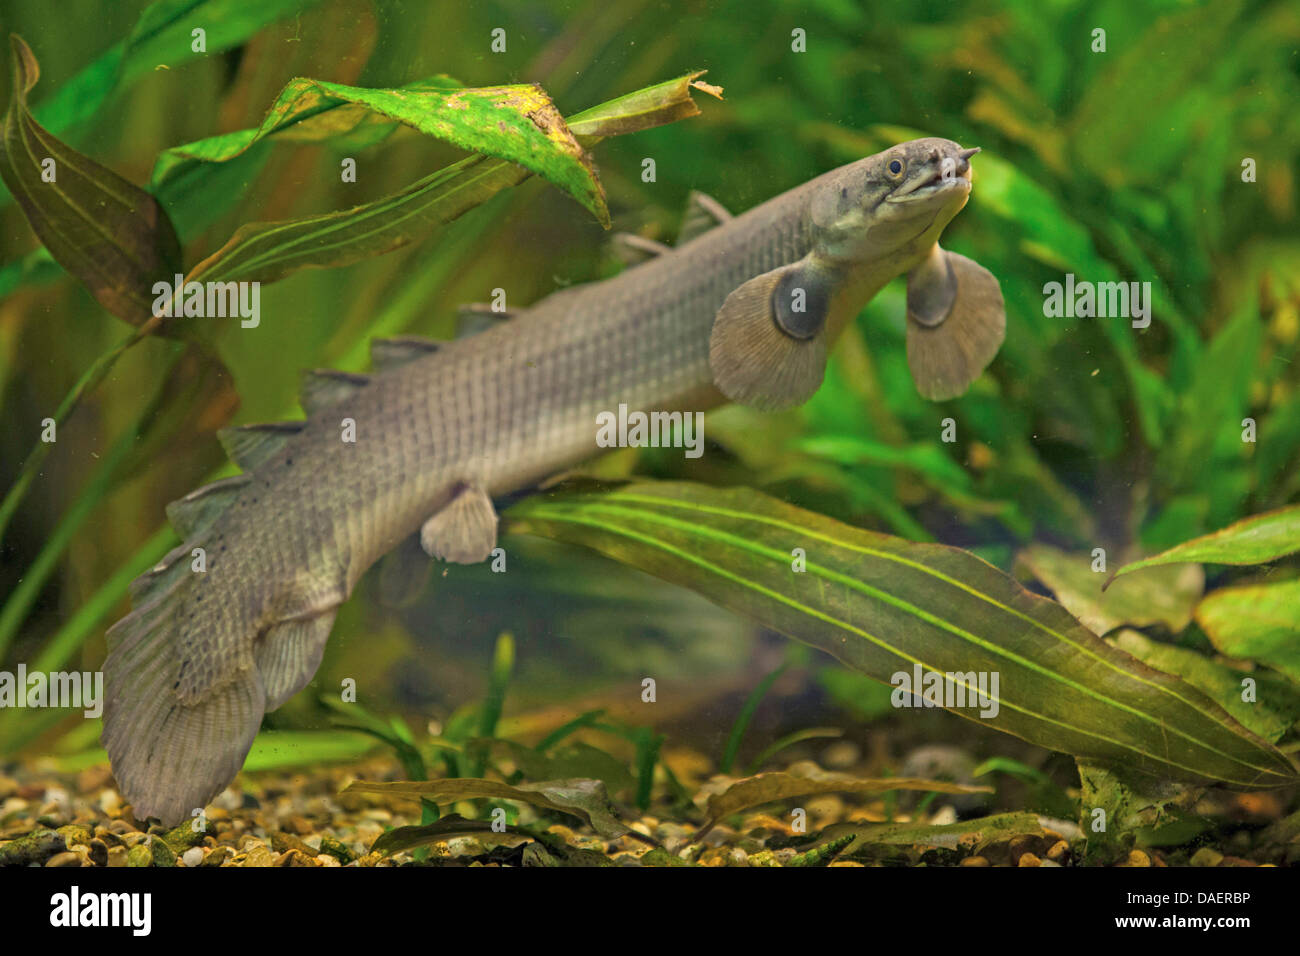 Senegal Bichir Polypterus Senegalus High Resolution Stock Photography And Images Alamy